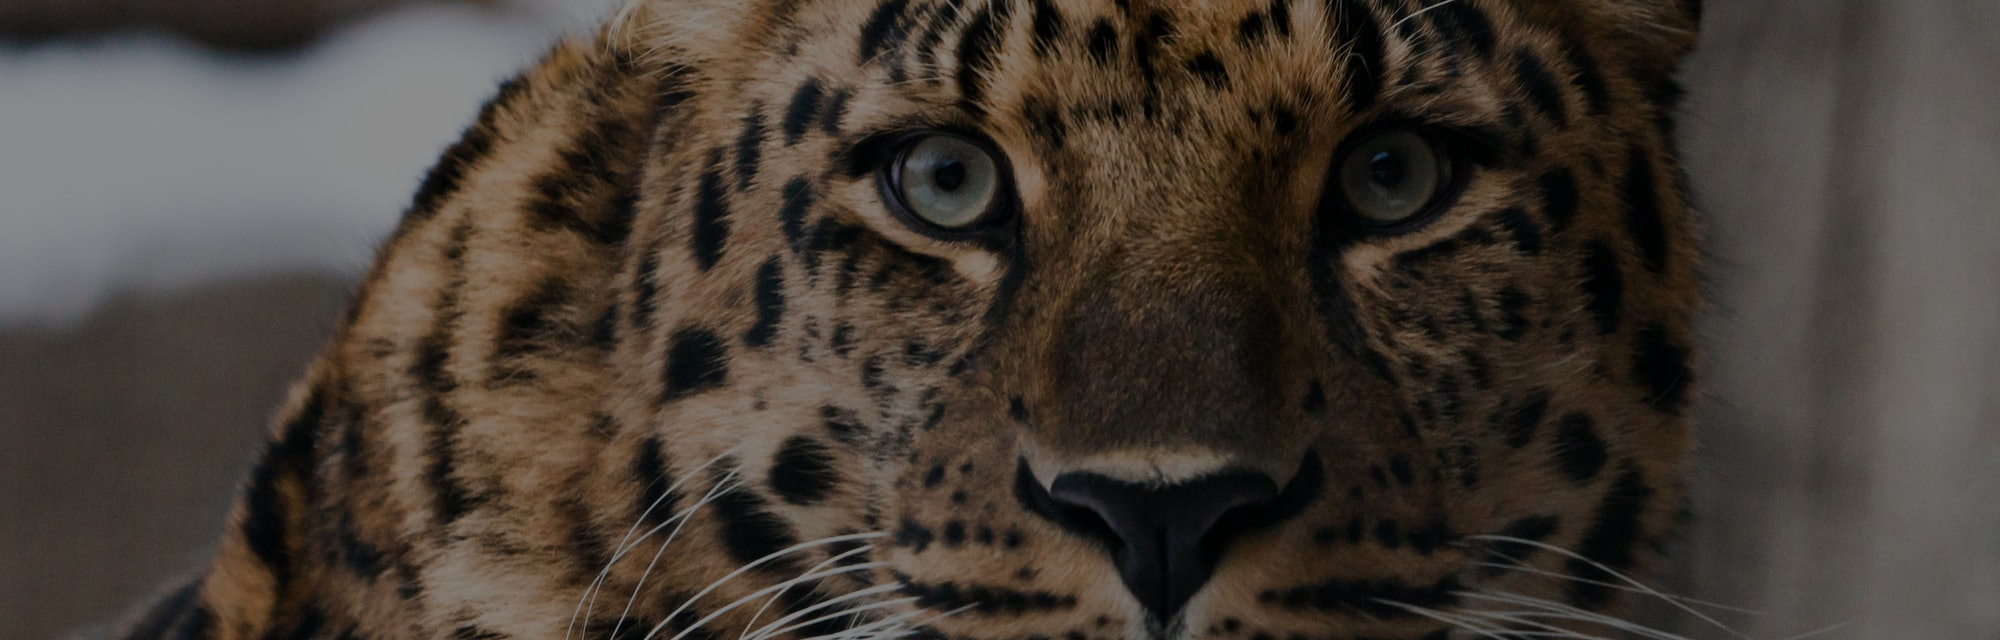 Muzzle of a Far Eastern leopard (Amur leopard) close-up, on a background of snow.